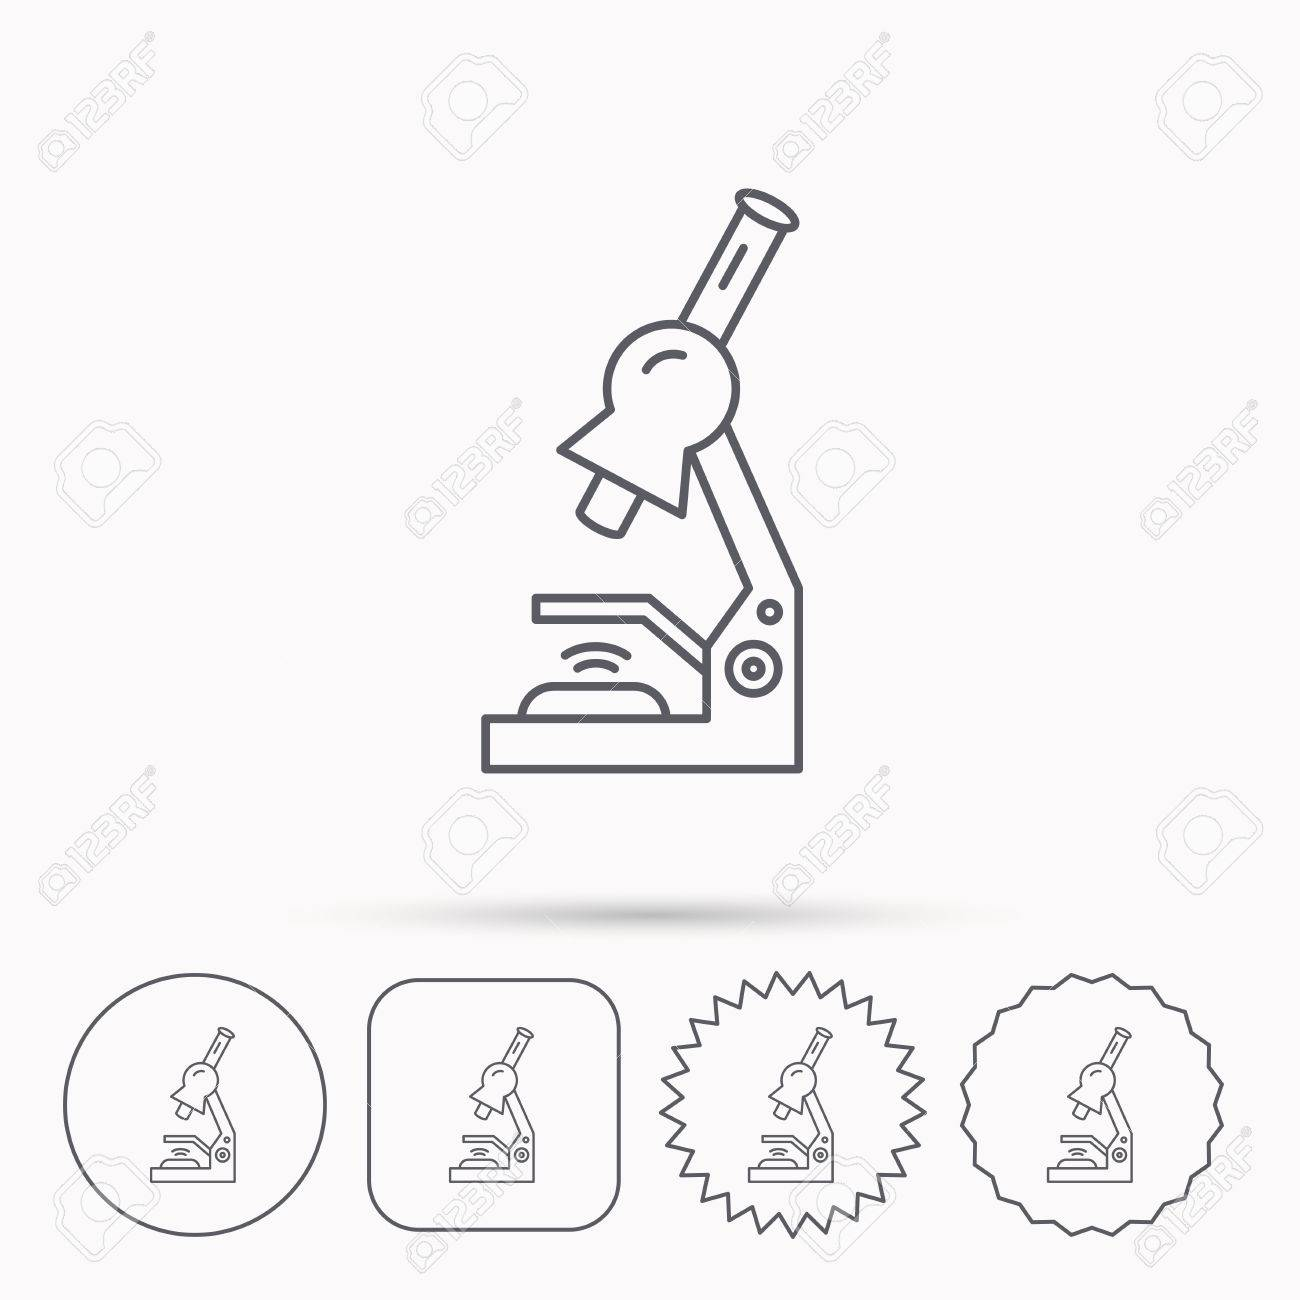 microscope drawing template at getdrawings com